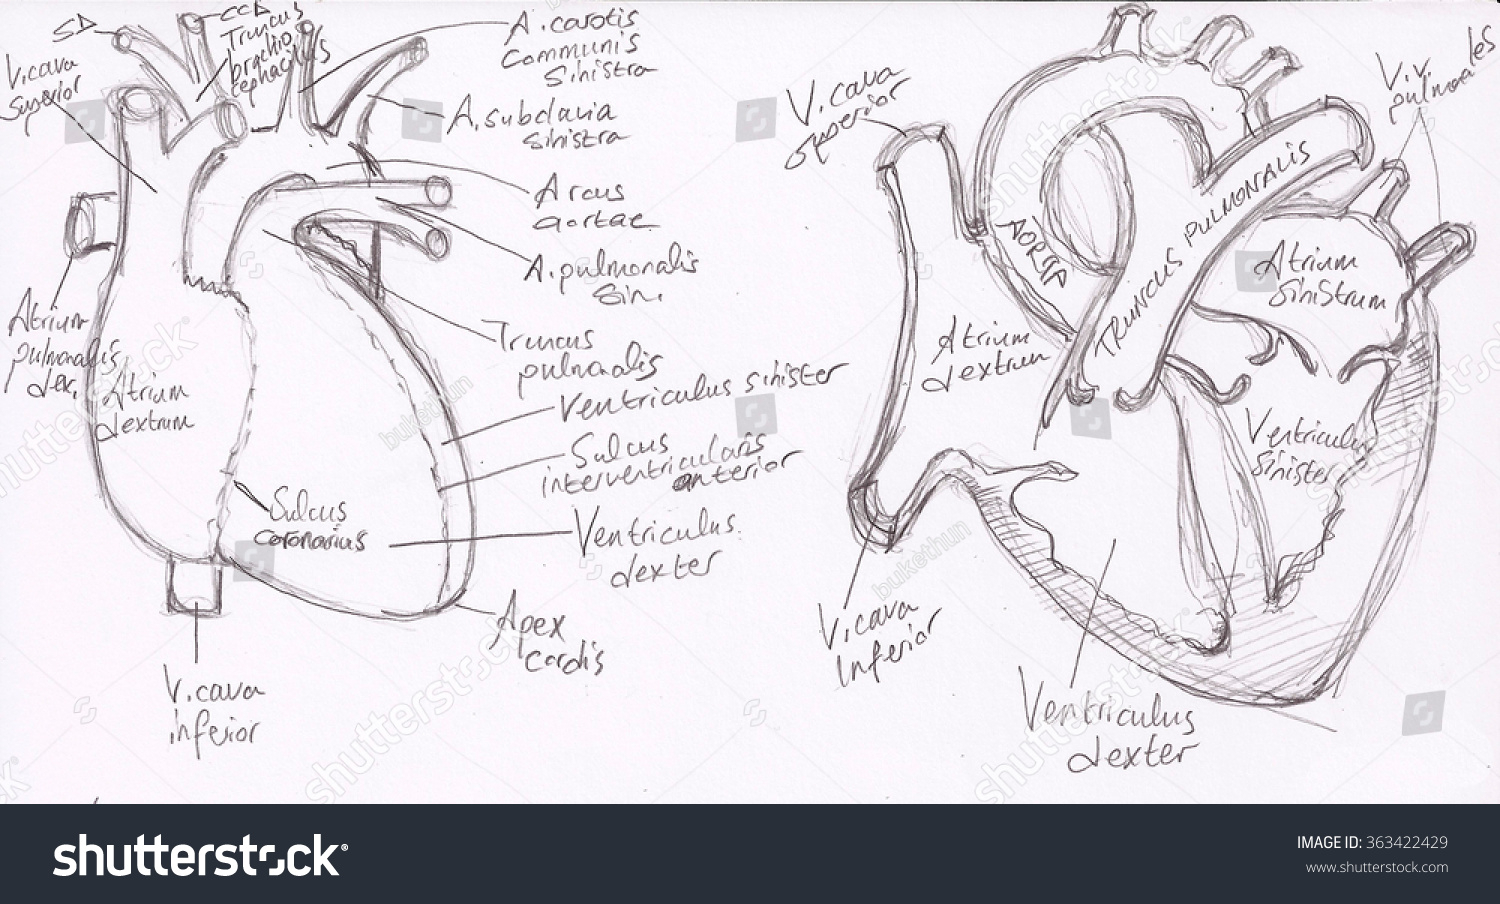 1500x904 Anatomical Drawing Of A Heart Anatomy Drawings Heart Medical